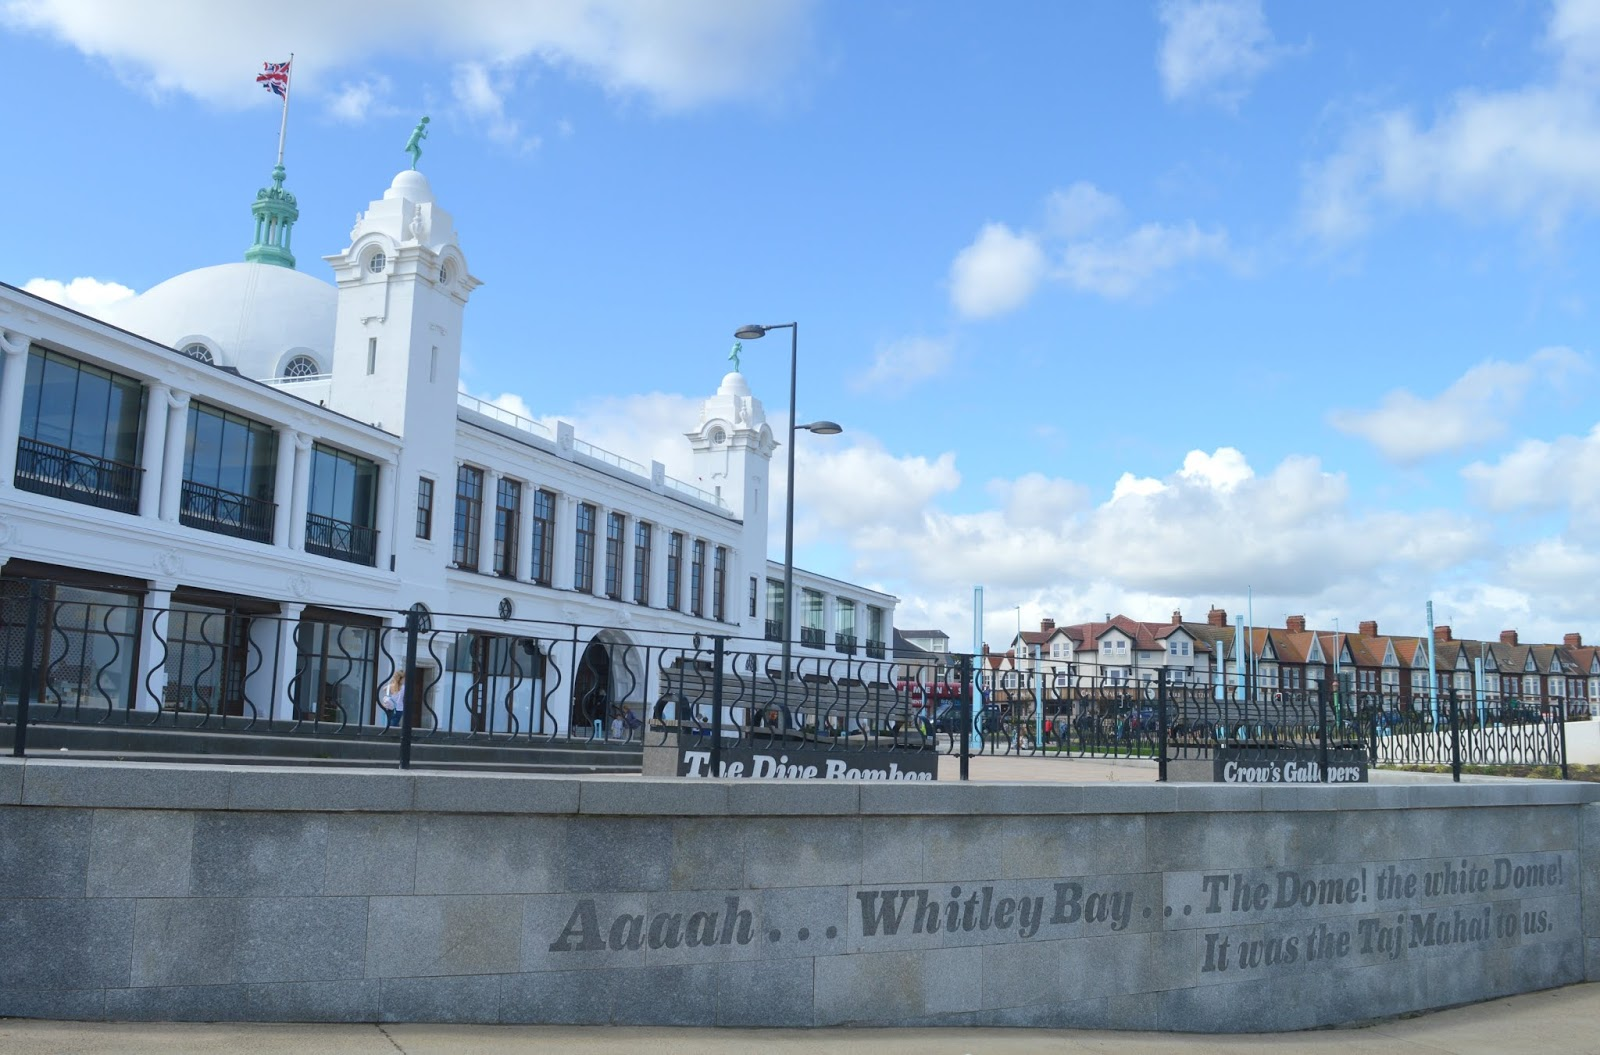 Whitley Bay Ultimate Seaside Destination - Spanish City